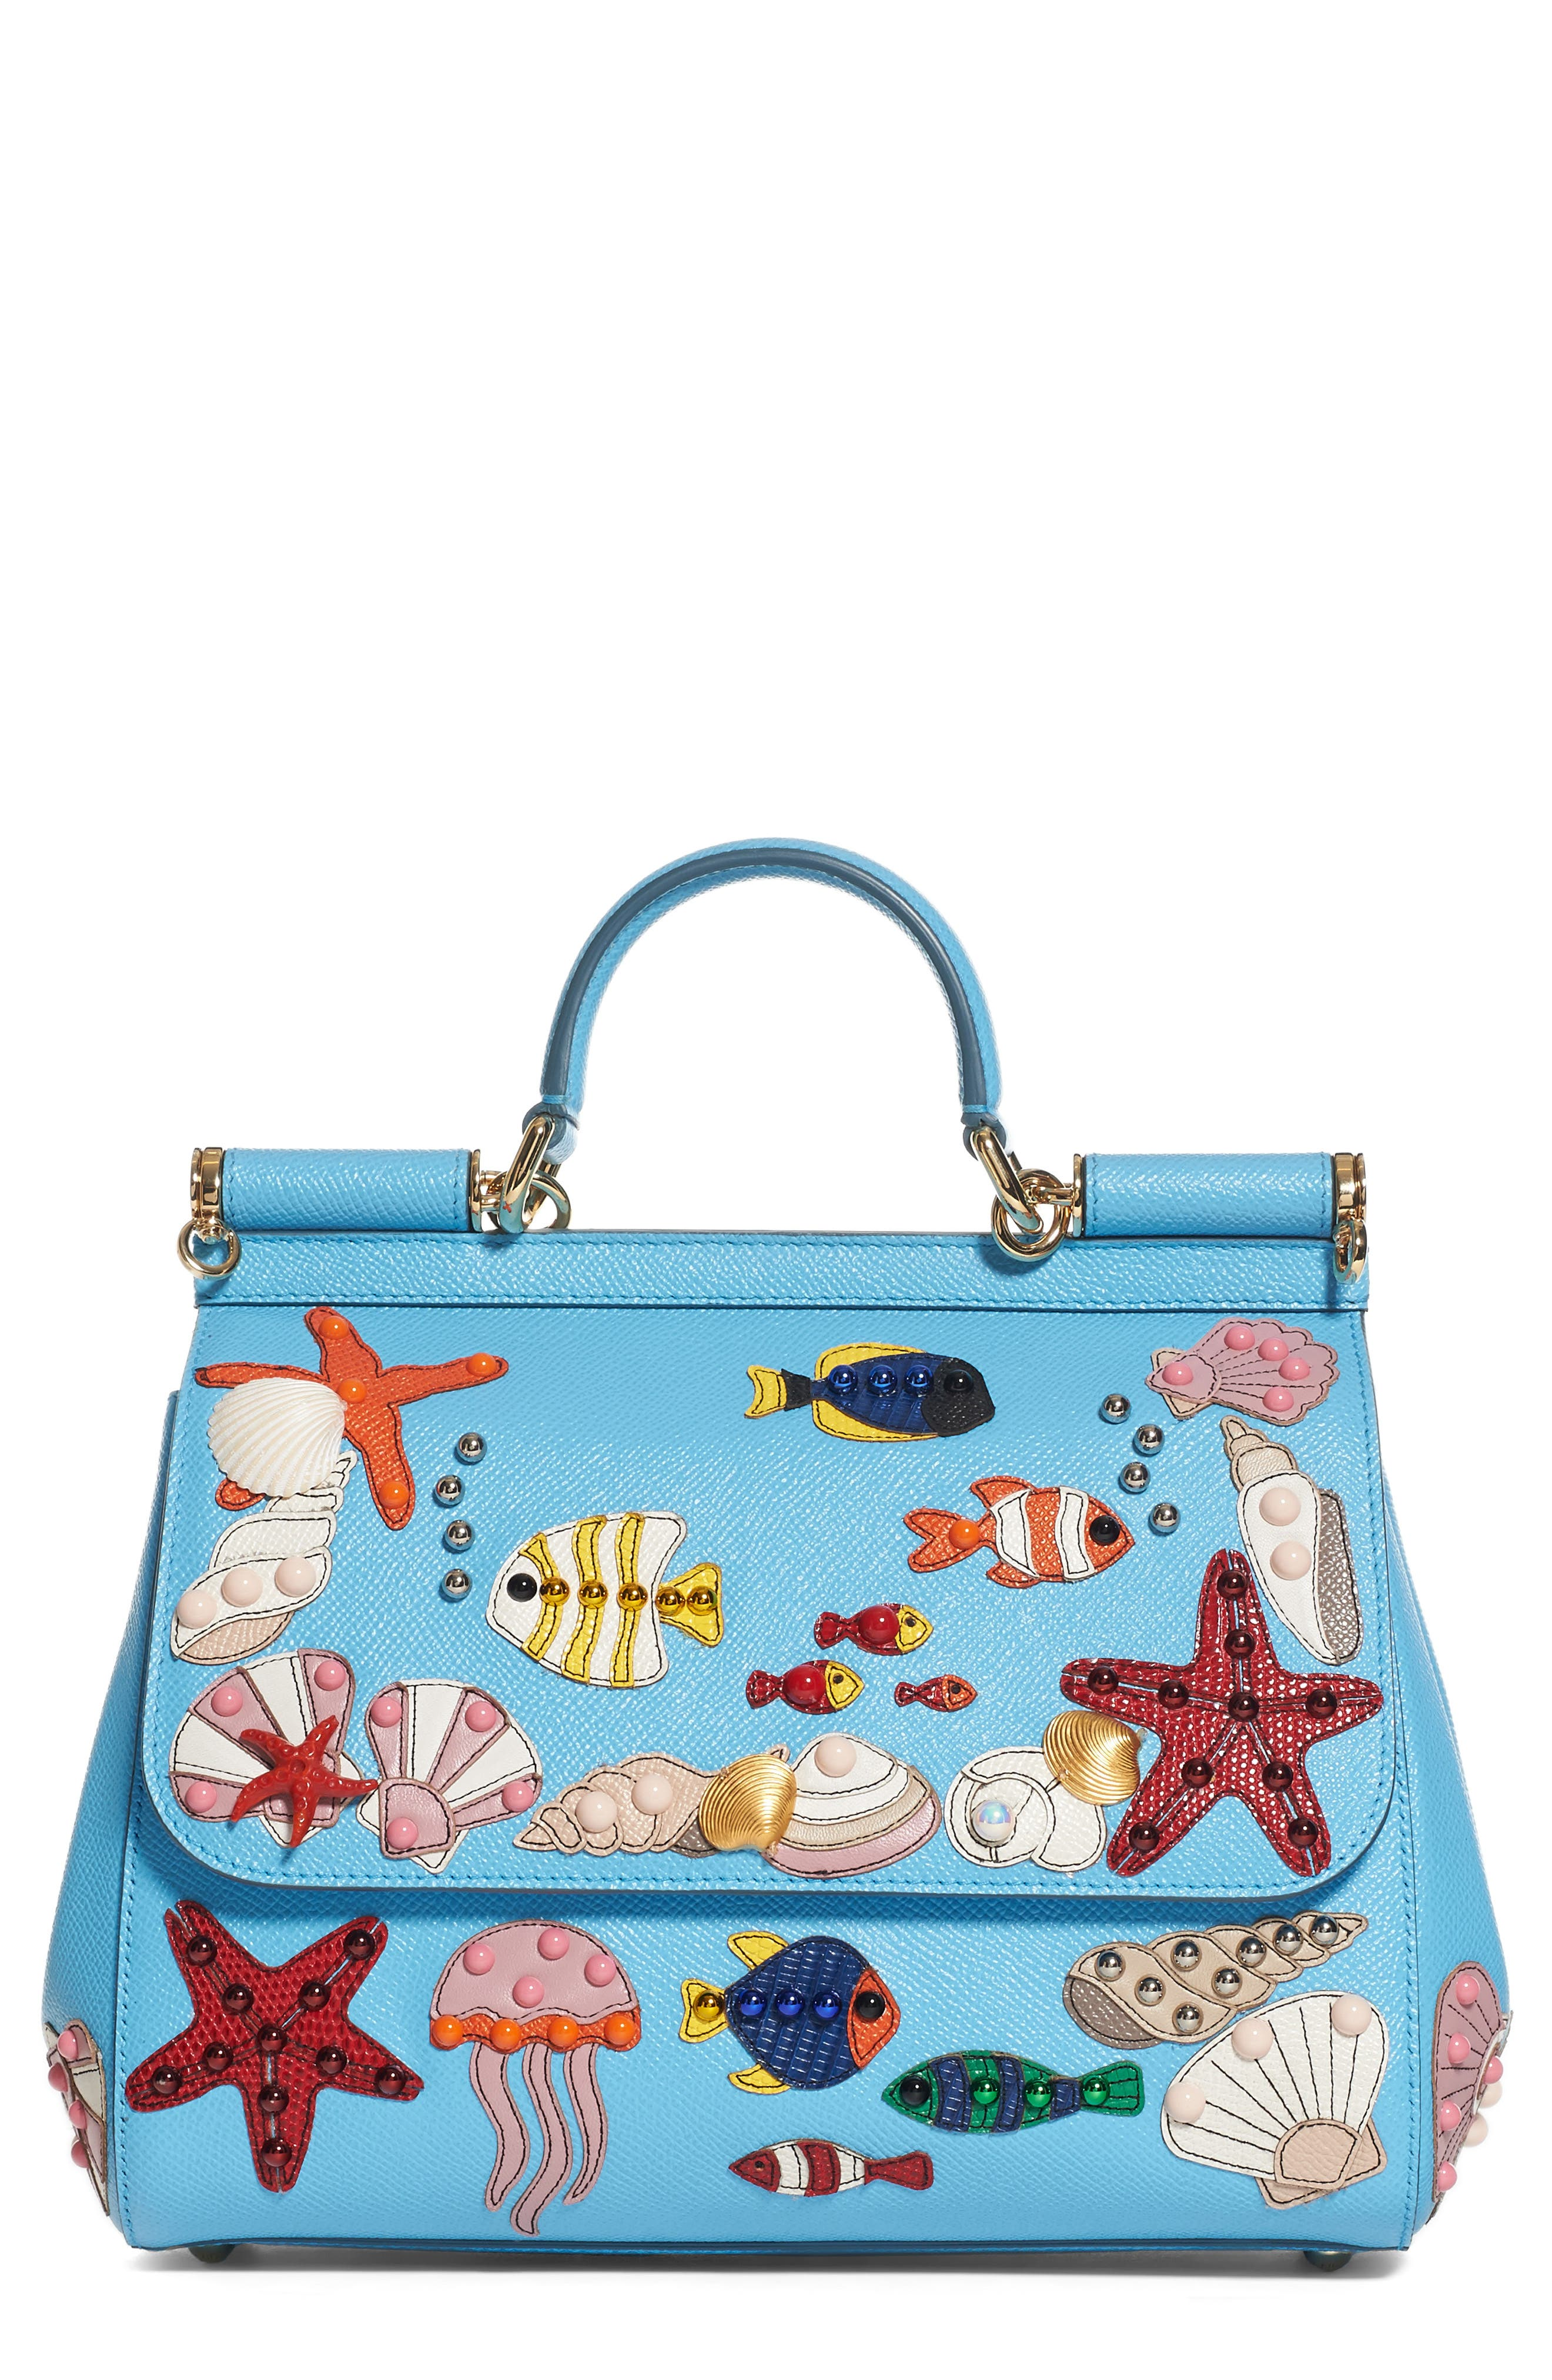 Alternate Image 1 Selected - Dolce&Gabbana Medium Miss Sicily Leather Satchel